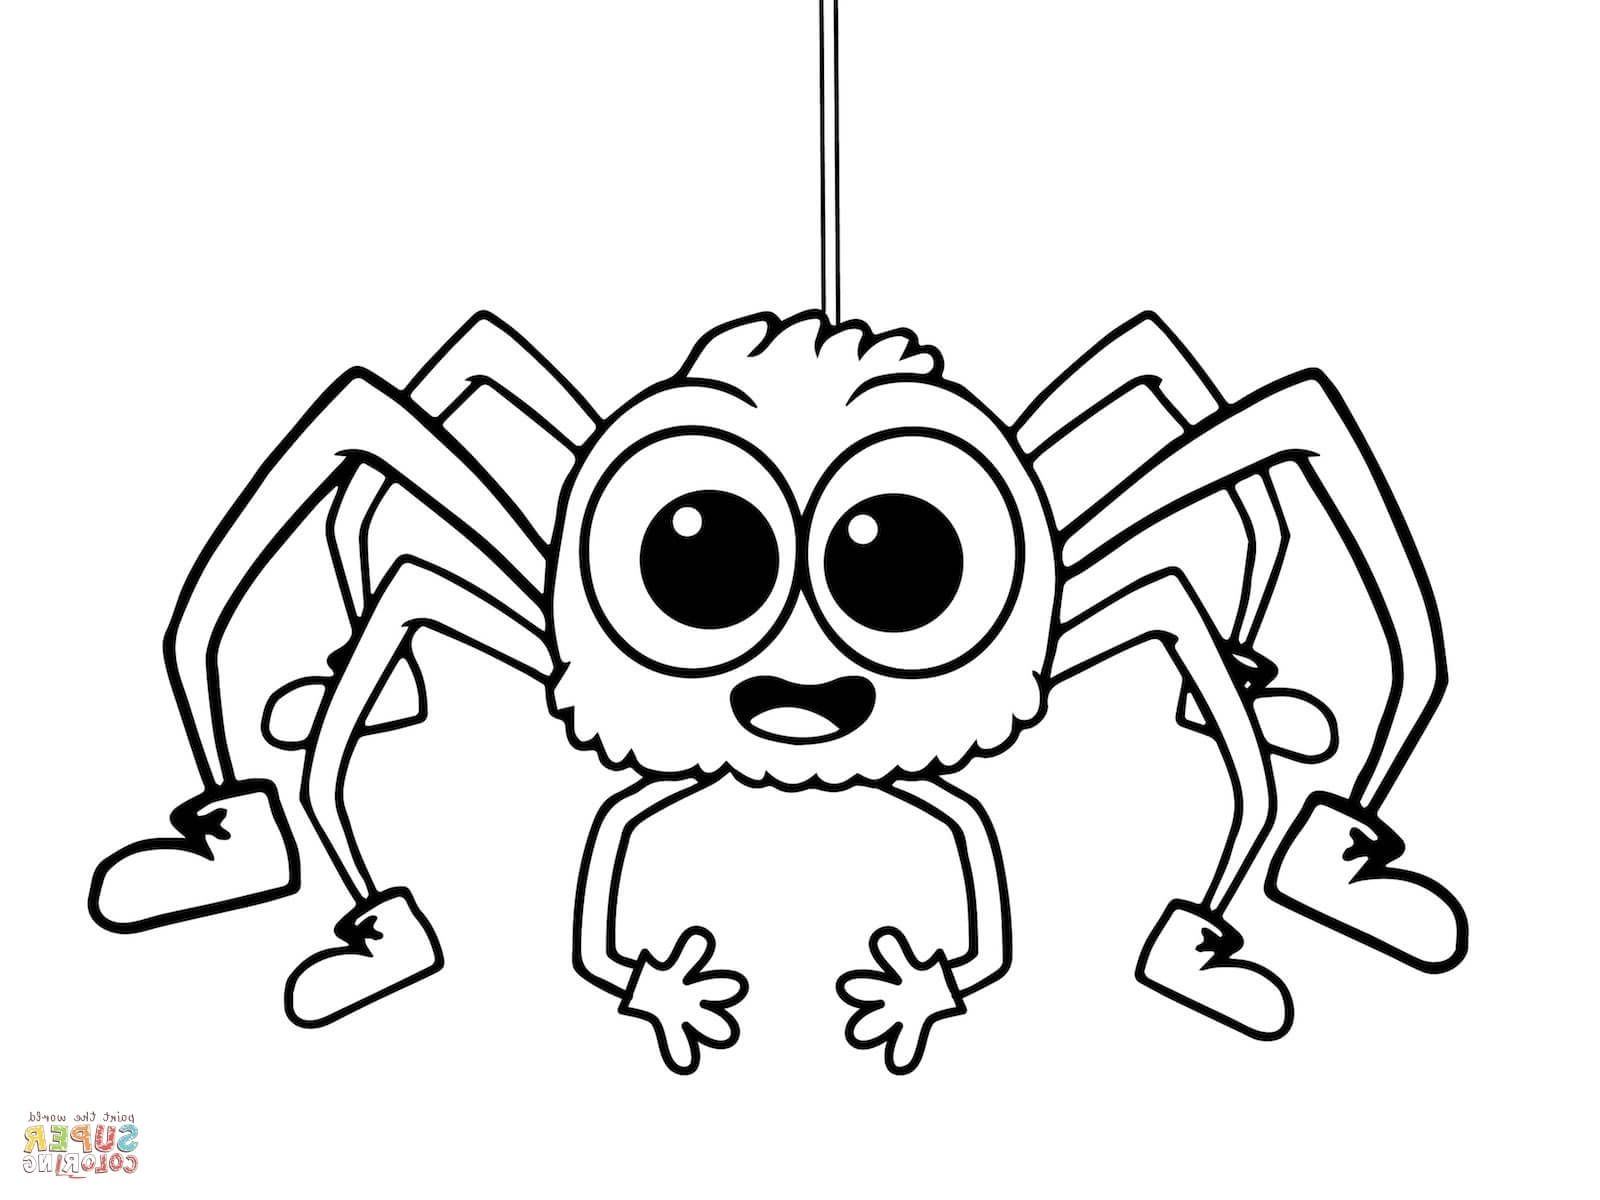 Coloring Download Coloring Pages Spider Page Colori On Spider Woman  Coloring Pages Download Coloring Pages Spider Coloring Page Download Spider  Coloring ...